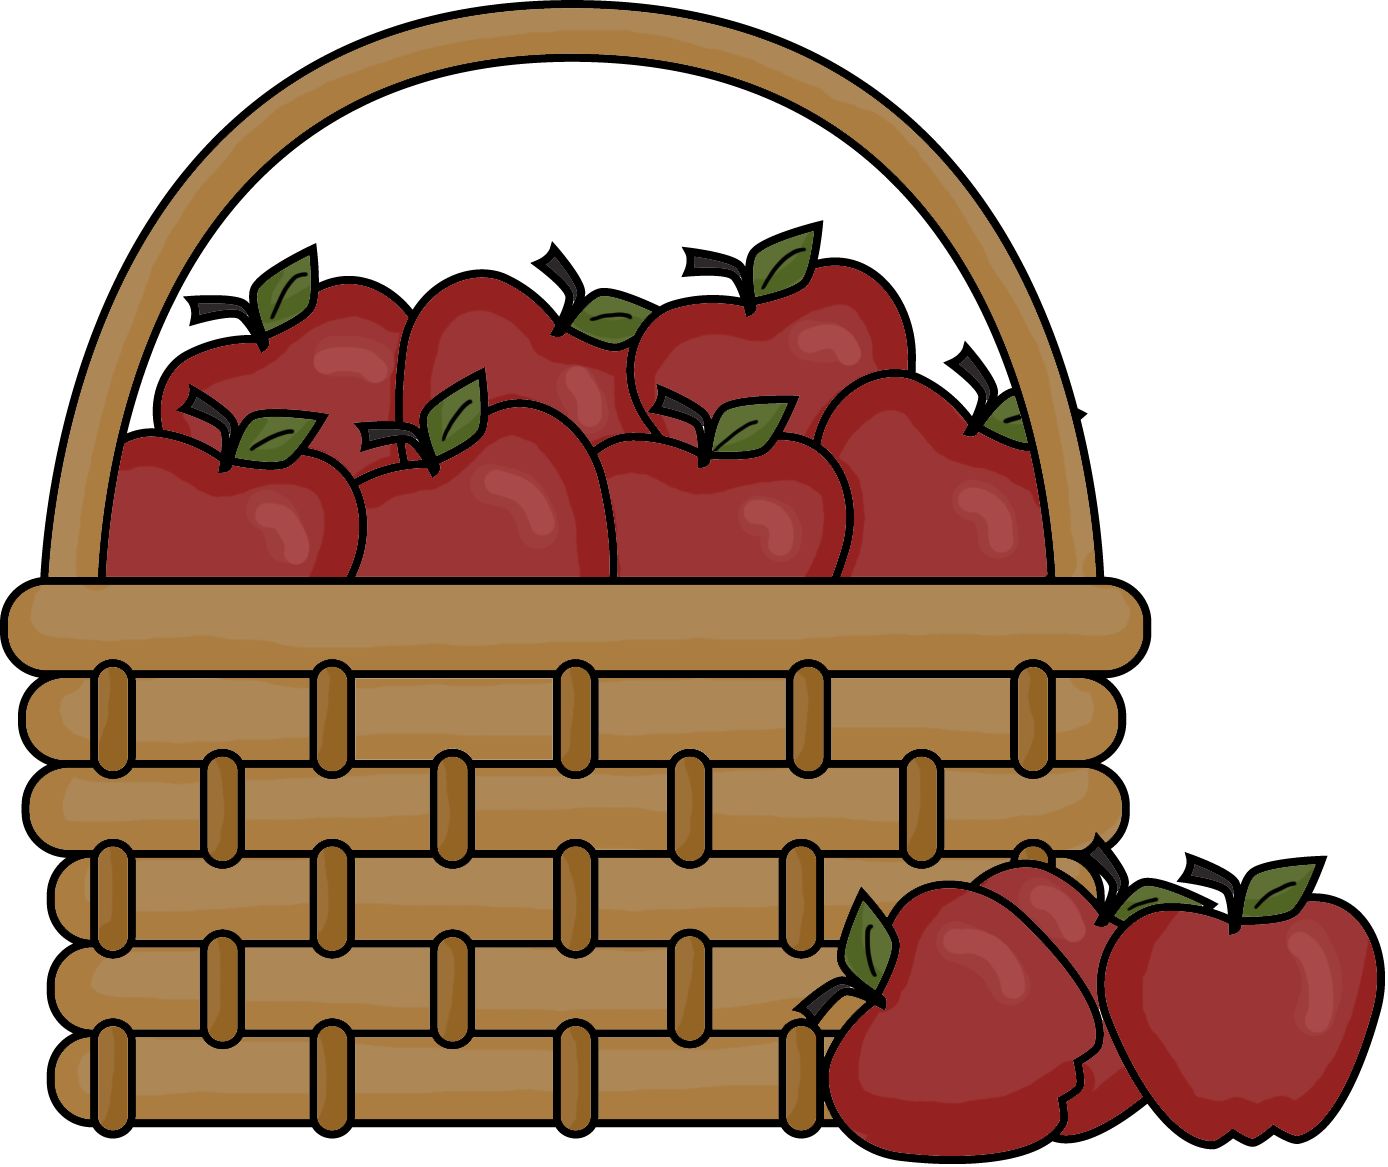 Peck of apples clipart clip week celebrating Apples! | Clipart Panda - Free Clipart Images clip